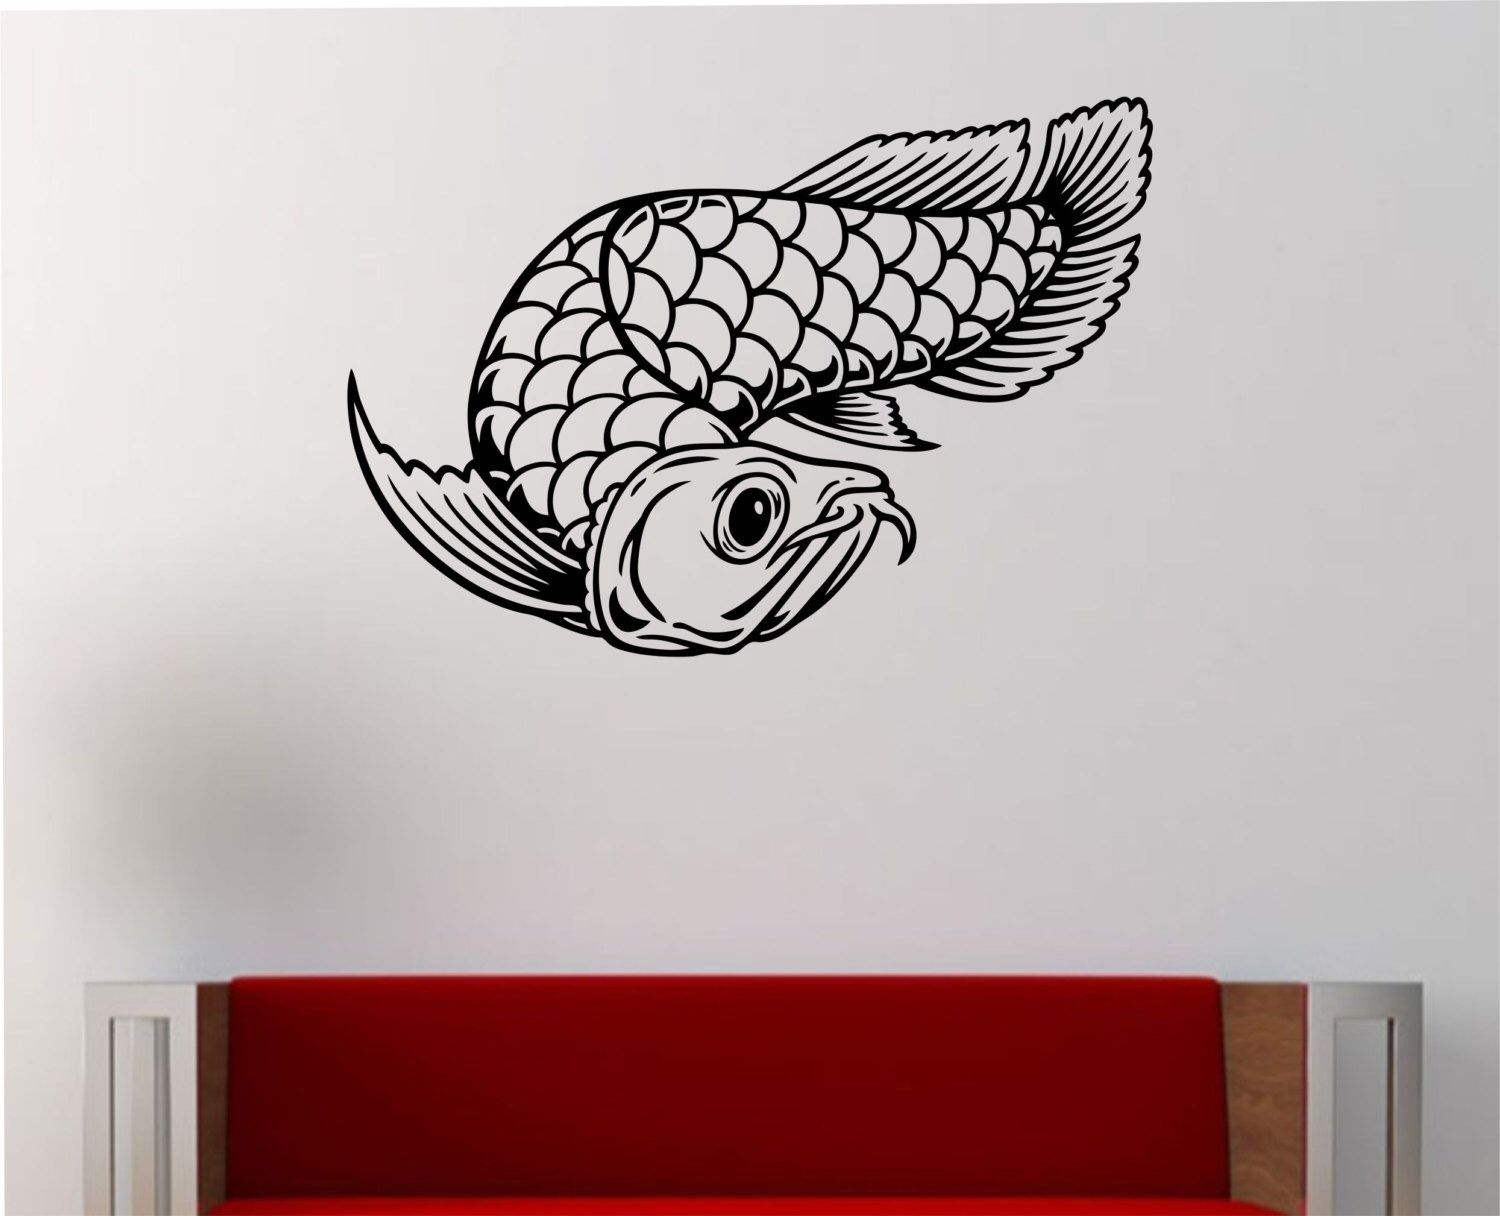 asian arowana fish wall decal vinyl sticker art decor bedroom asian arowana fish wall decal vinyl sticker art decor bedroom design mural interior design japanese japan goodluck animals